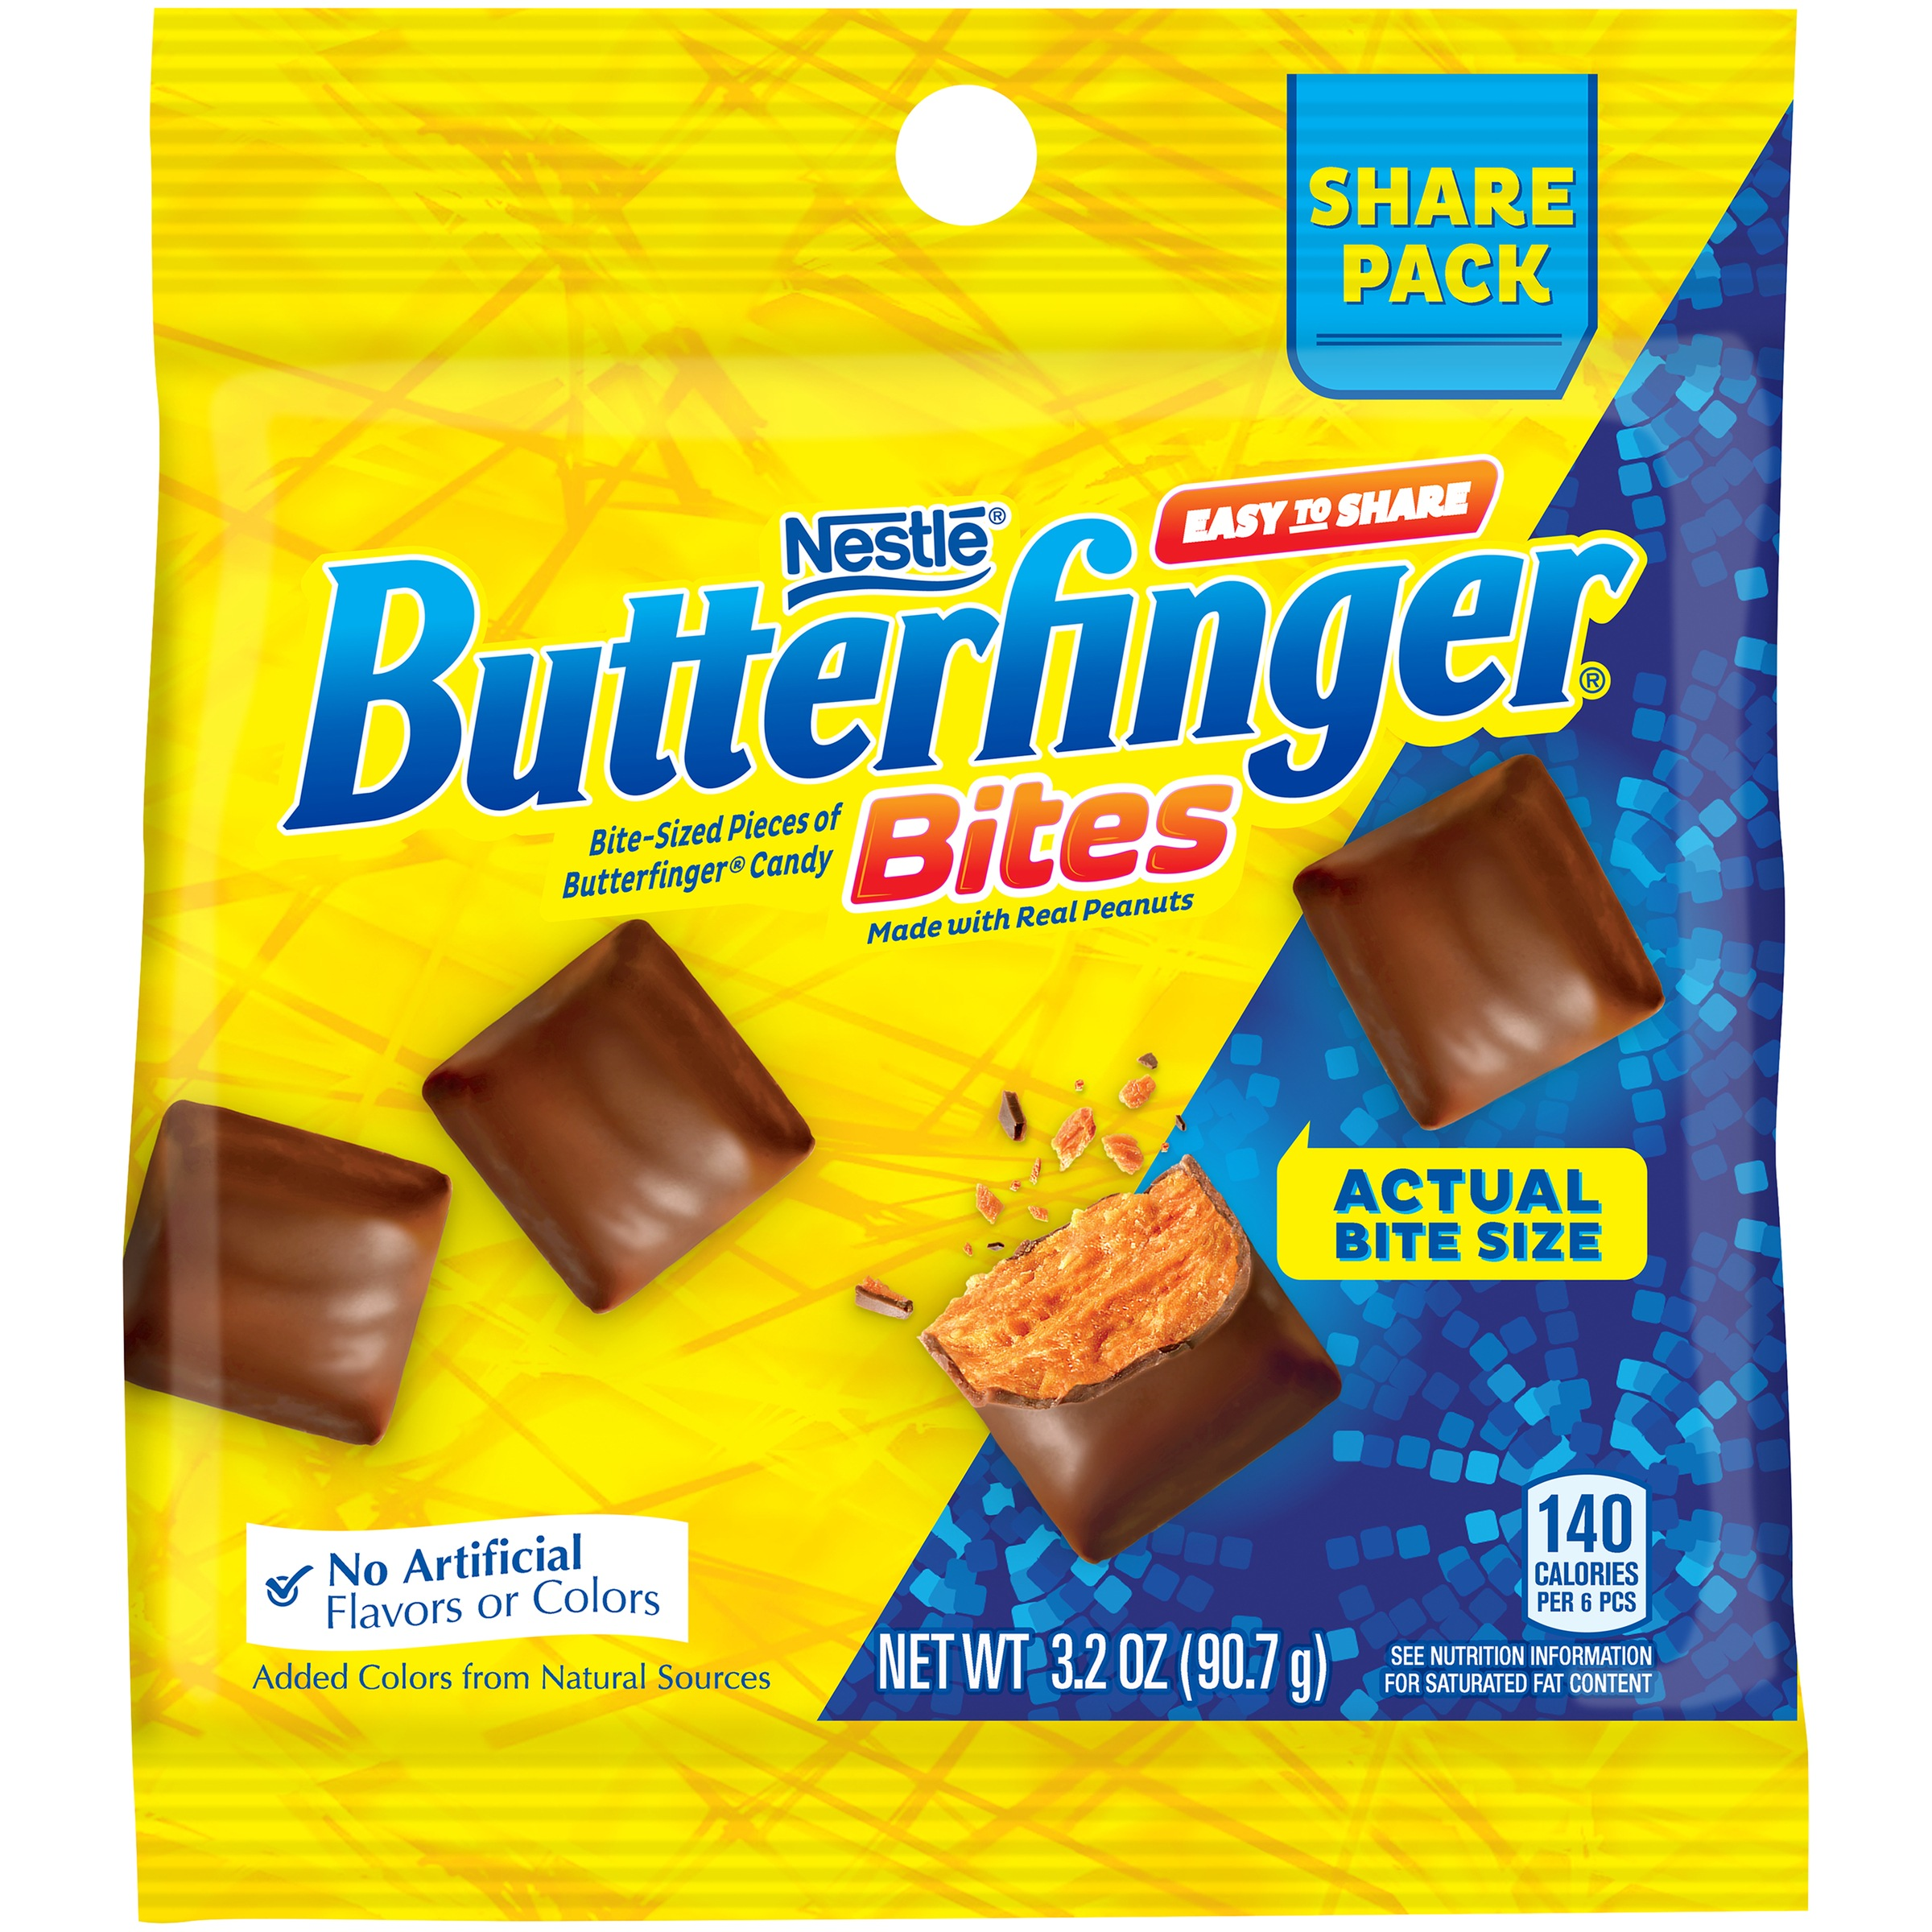 BUTTERFINGER BITES 3.2 oz. Bag